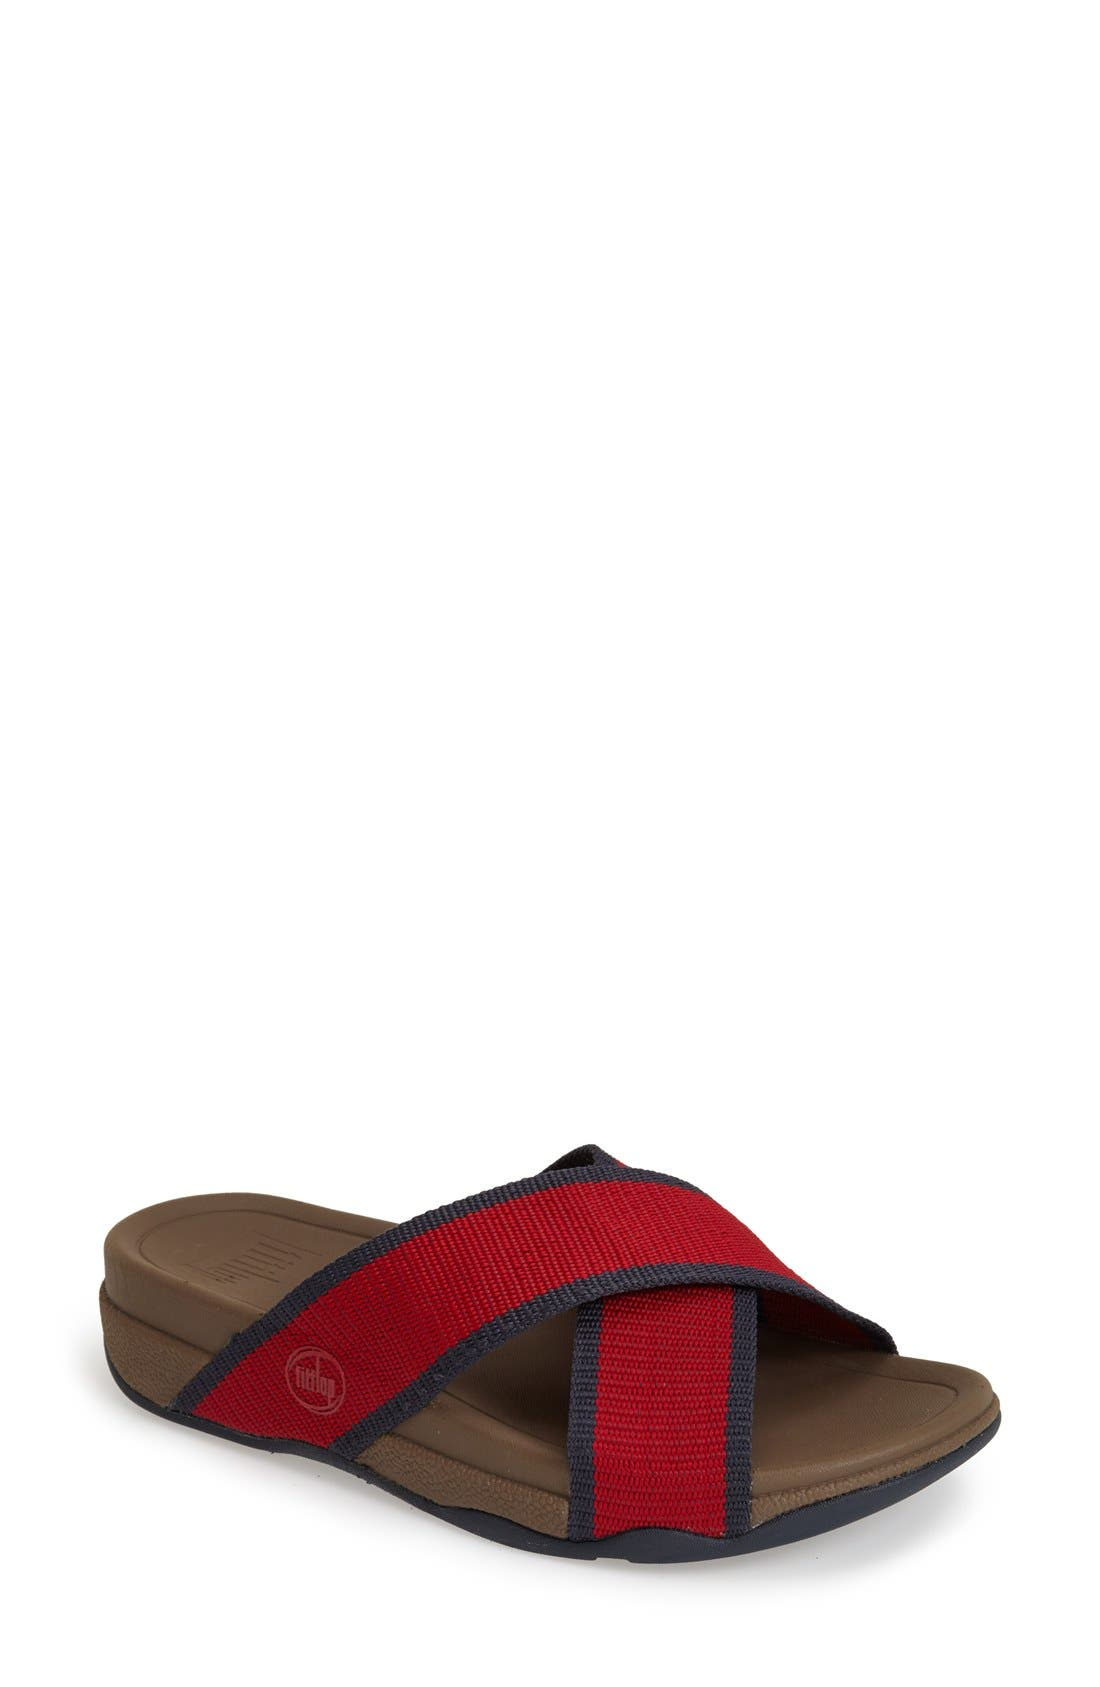 FITFLOP 'Surfer' Slide Sandal